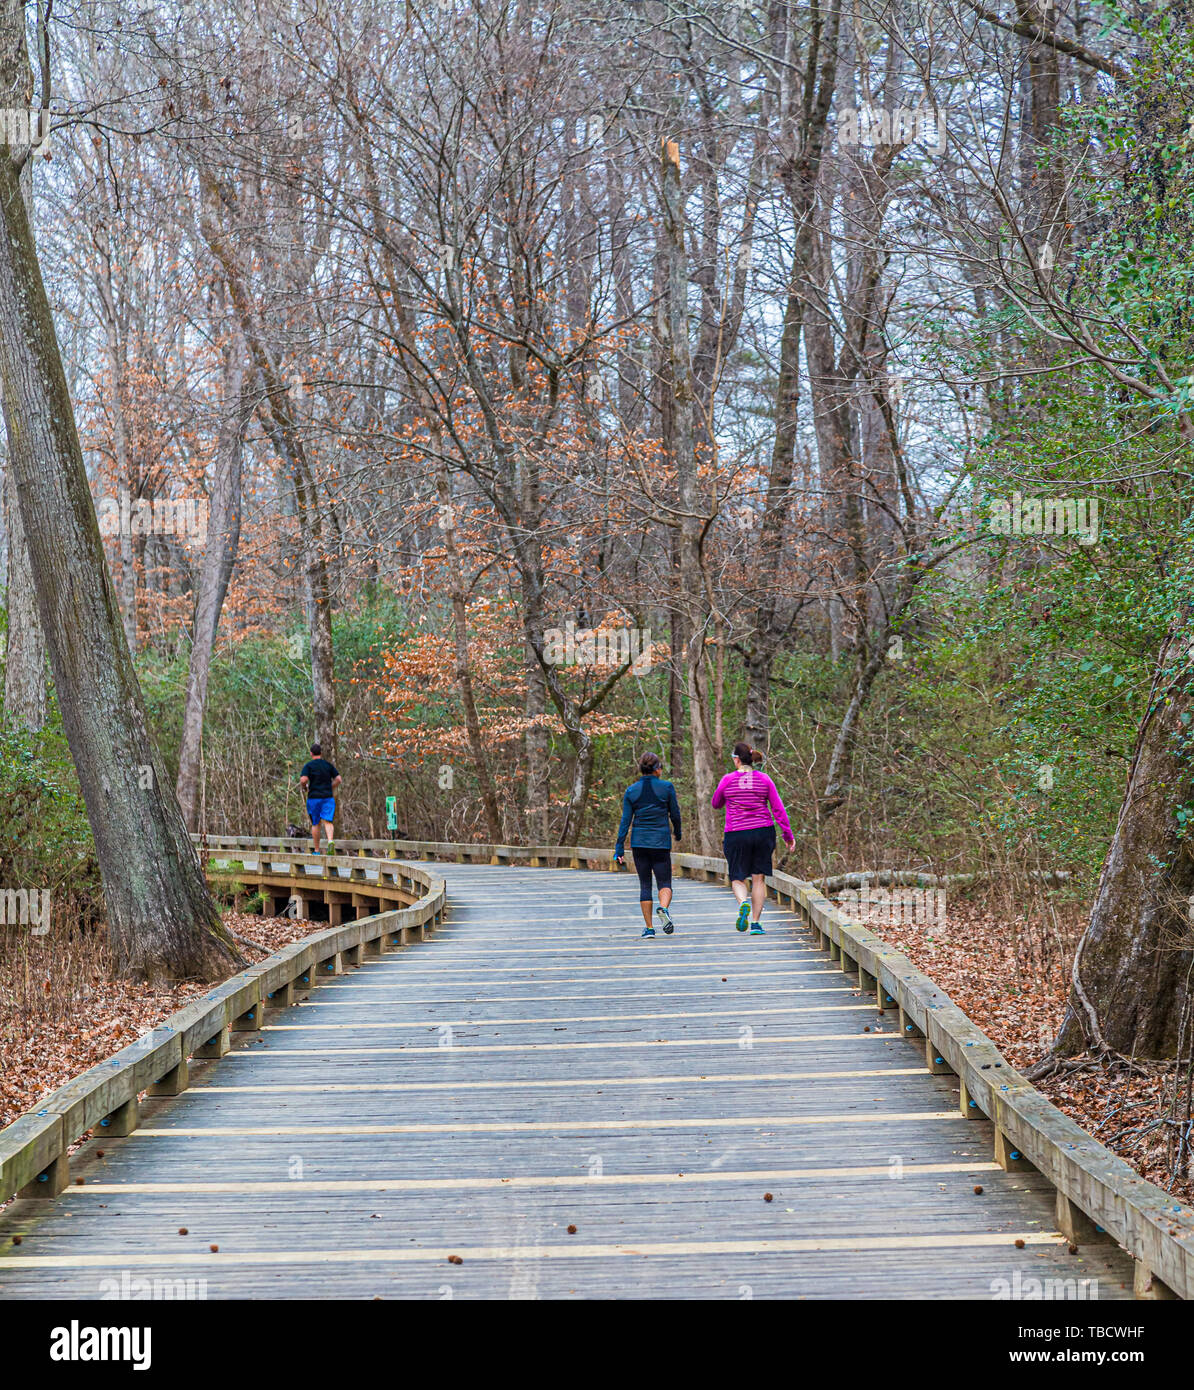 Walkers and Runners on a walking, running, biking and fistness trail through woodlands and wetlands in Georgia - Stock Image